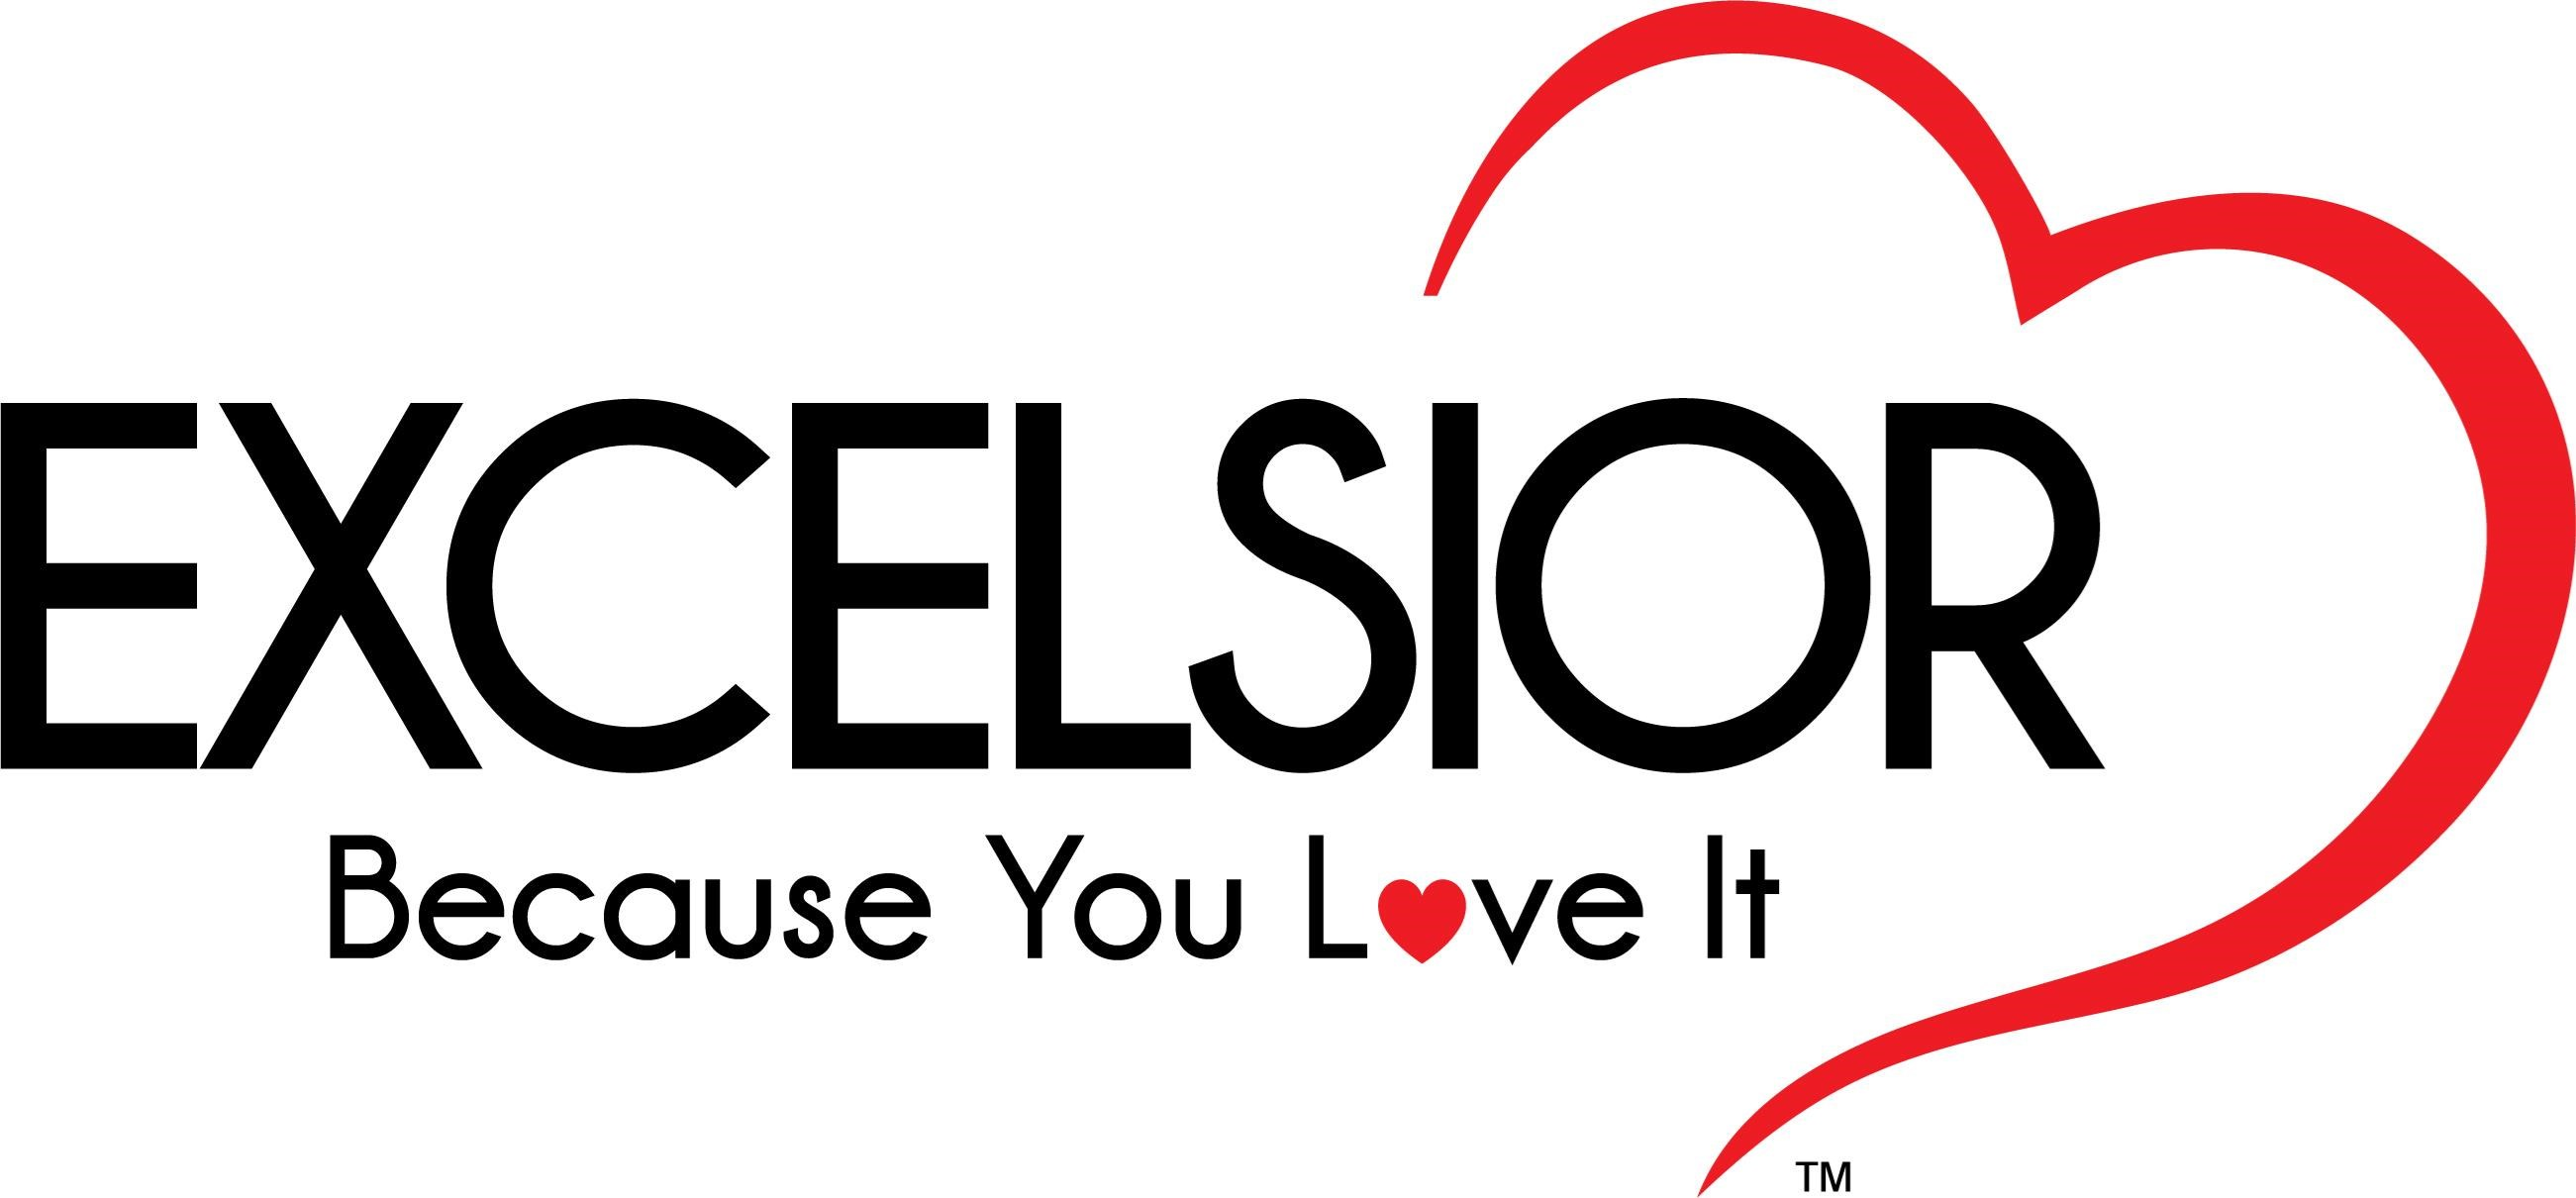 Stationary Furniture Stationary Furniture Protection $2001-$3000 by Excelsior at C. S. Wo & Sons Hawaii